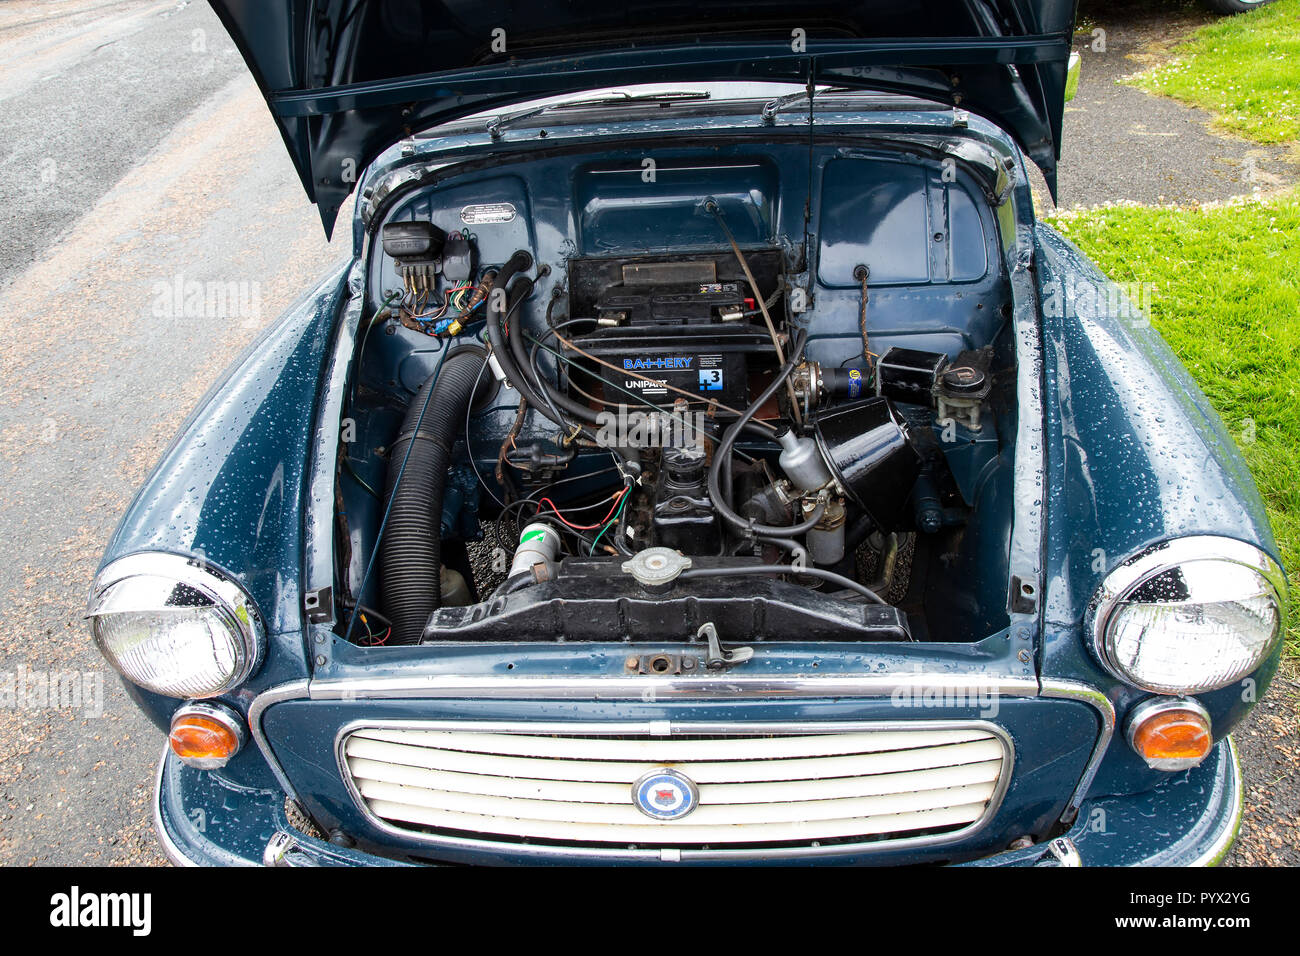 View inside the engine compartment of a Classic Morris Minor Traveller car - Stock Image